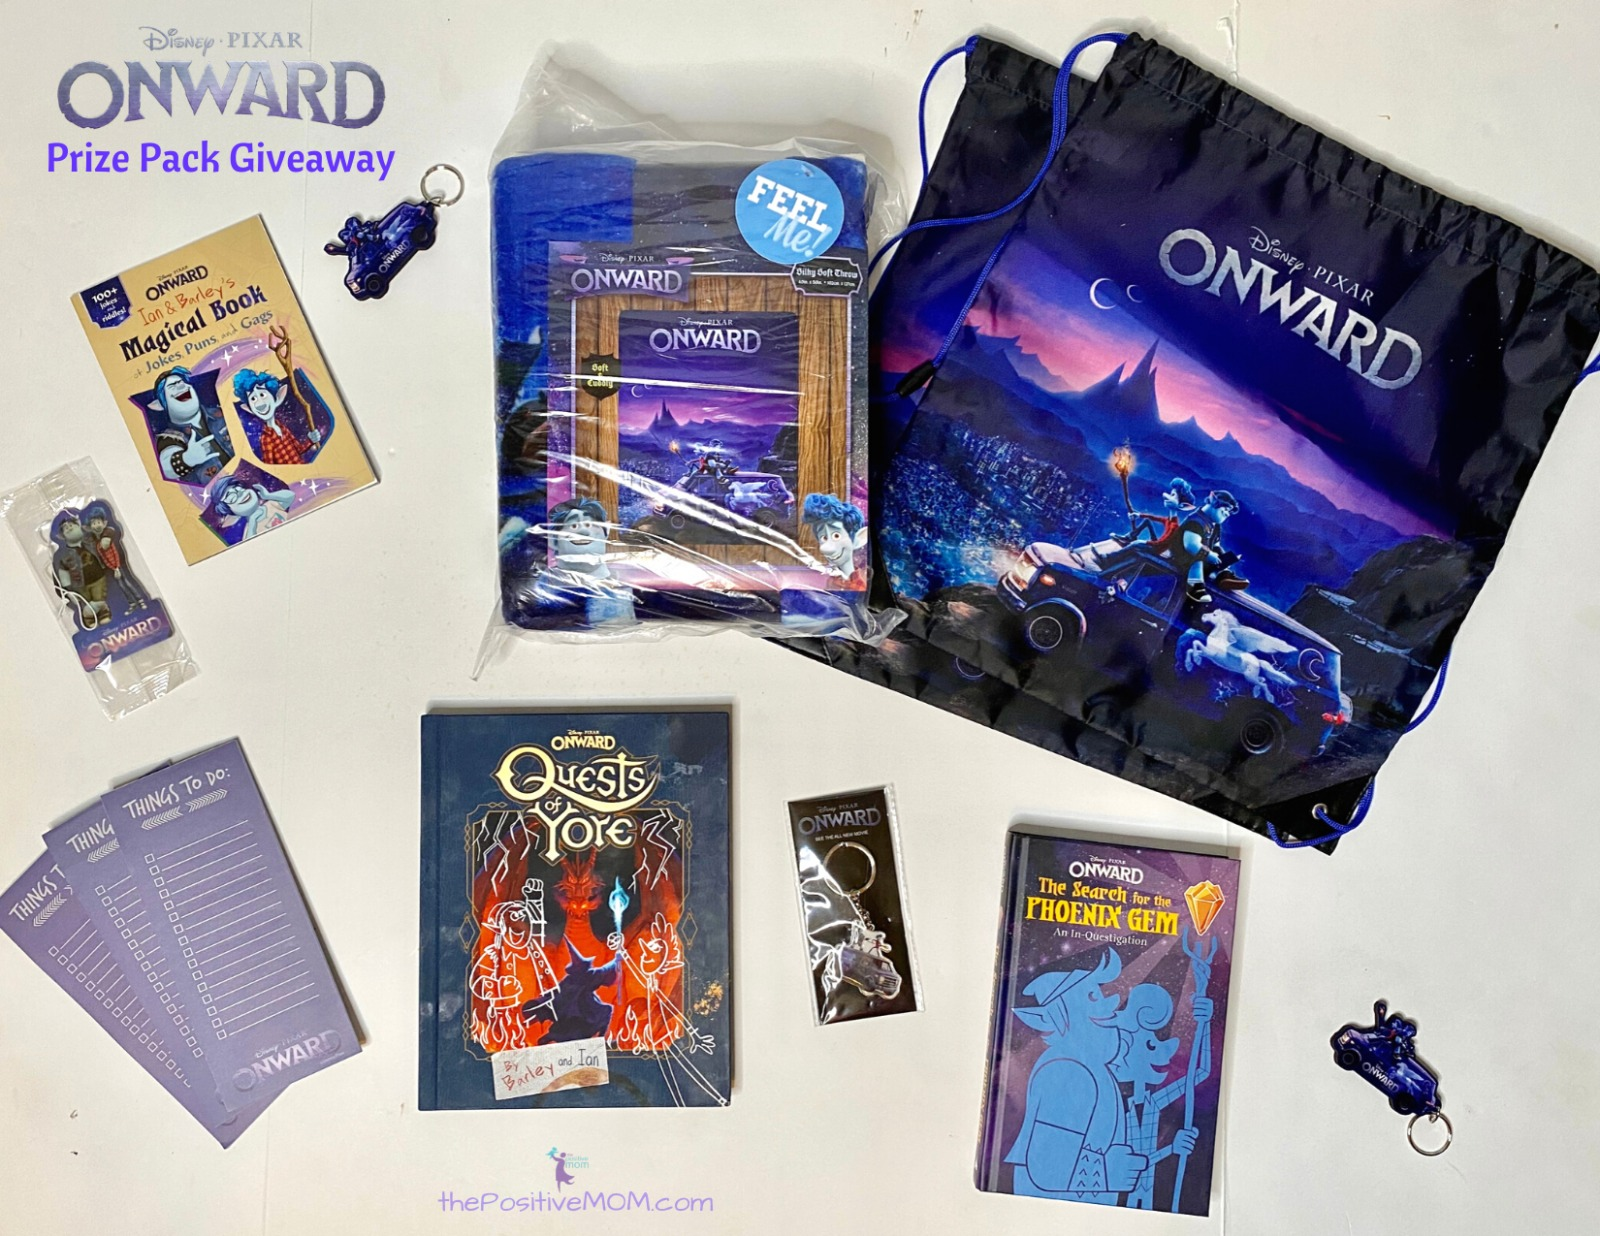 Onward Prize Pack Giveaway!